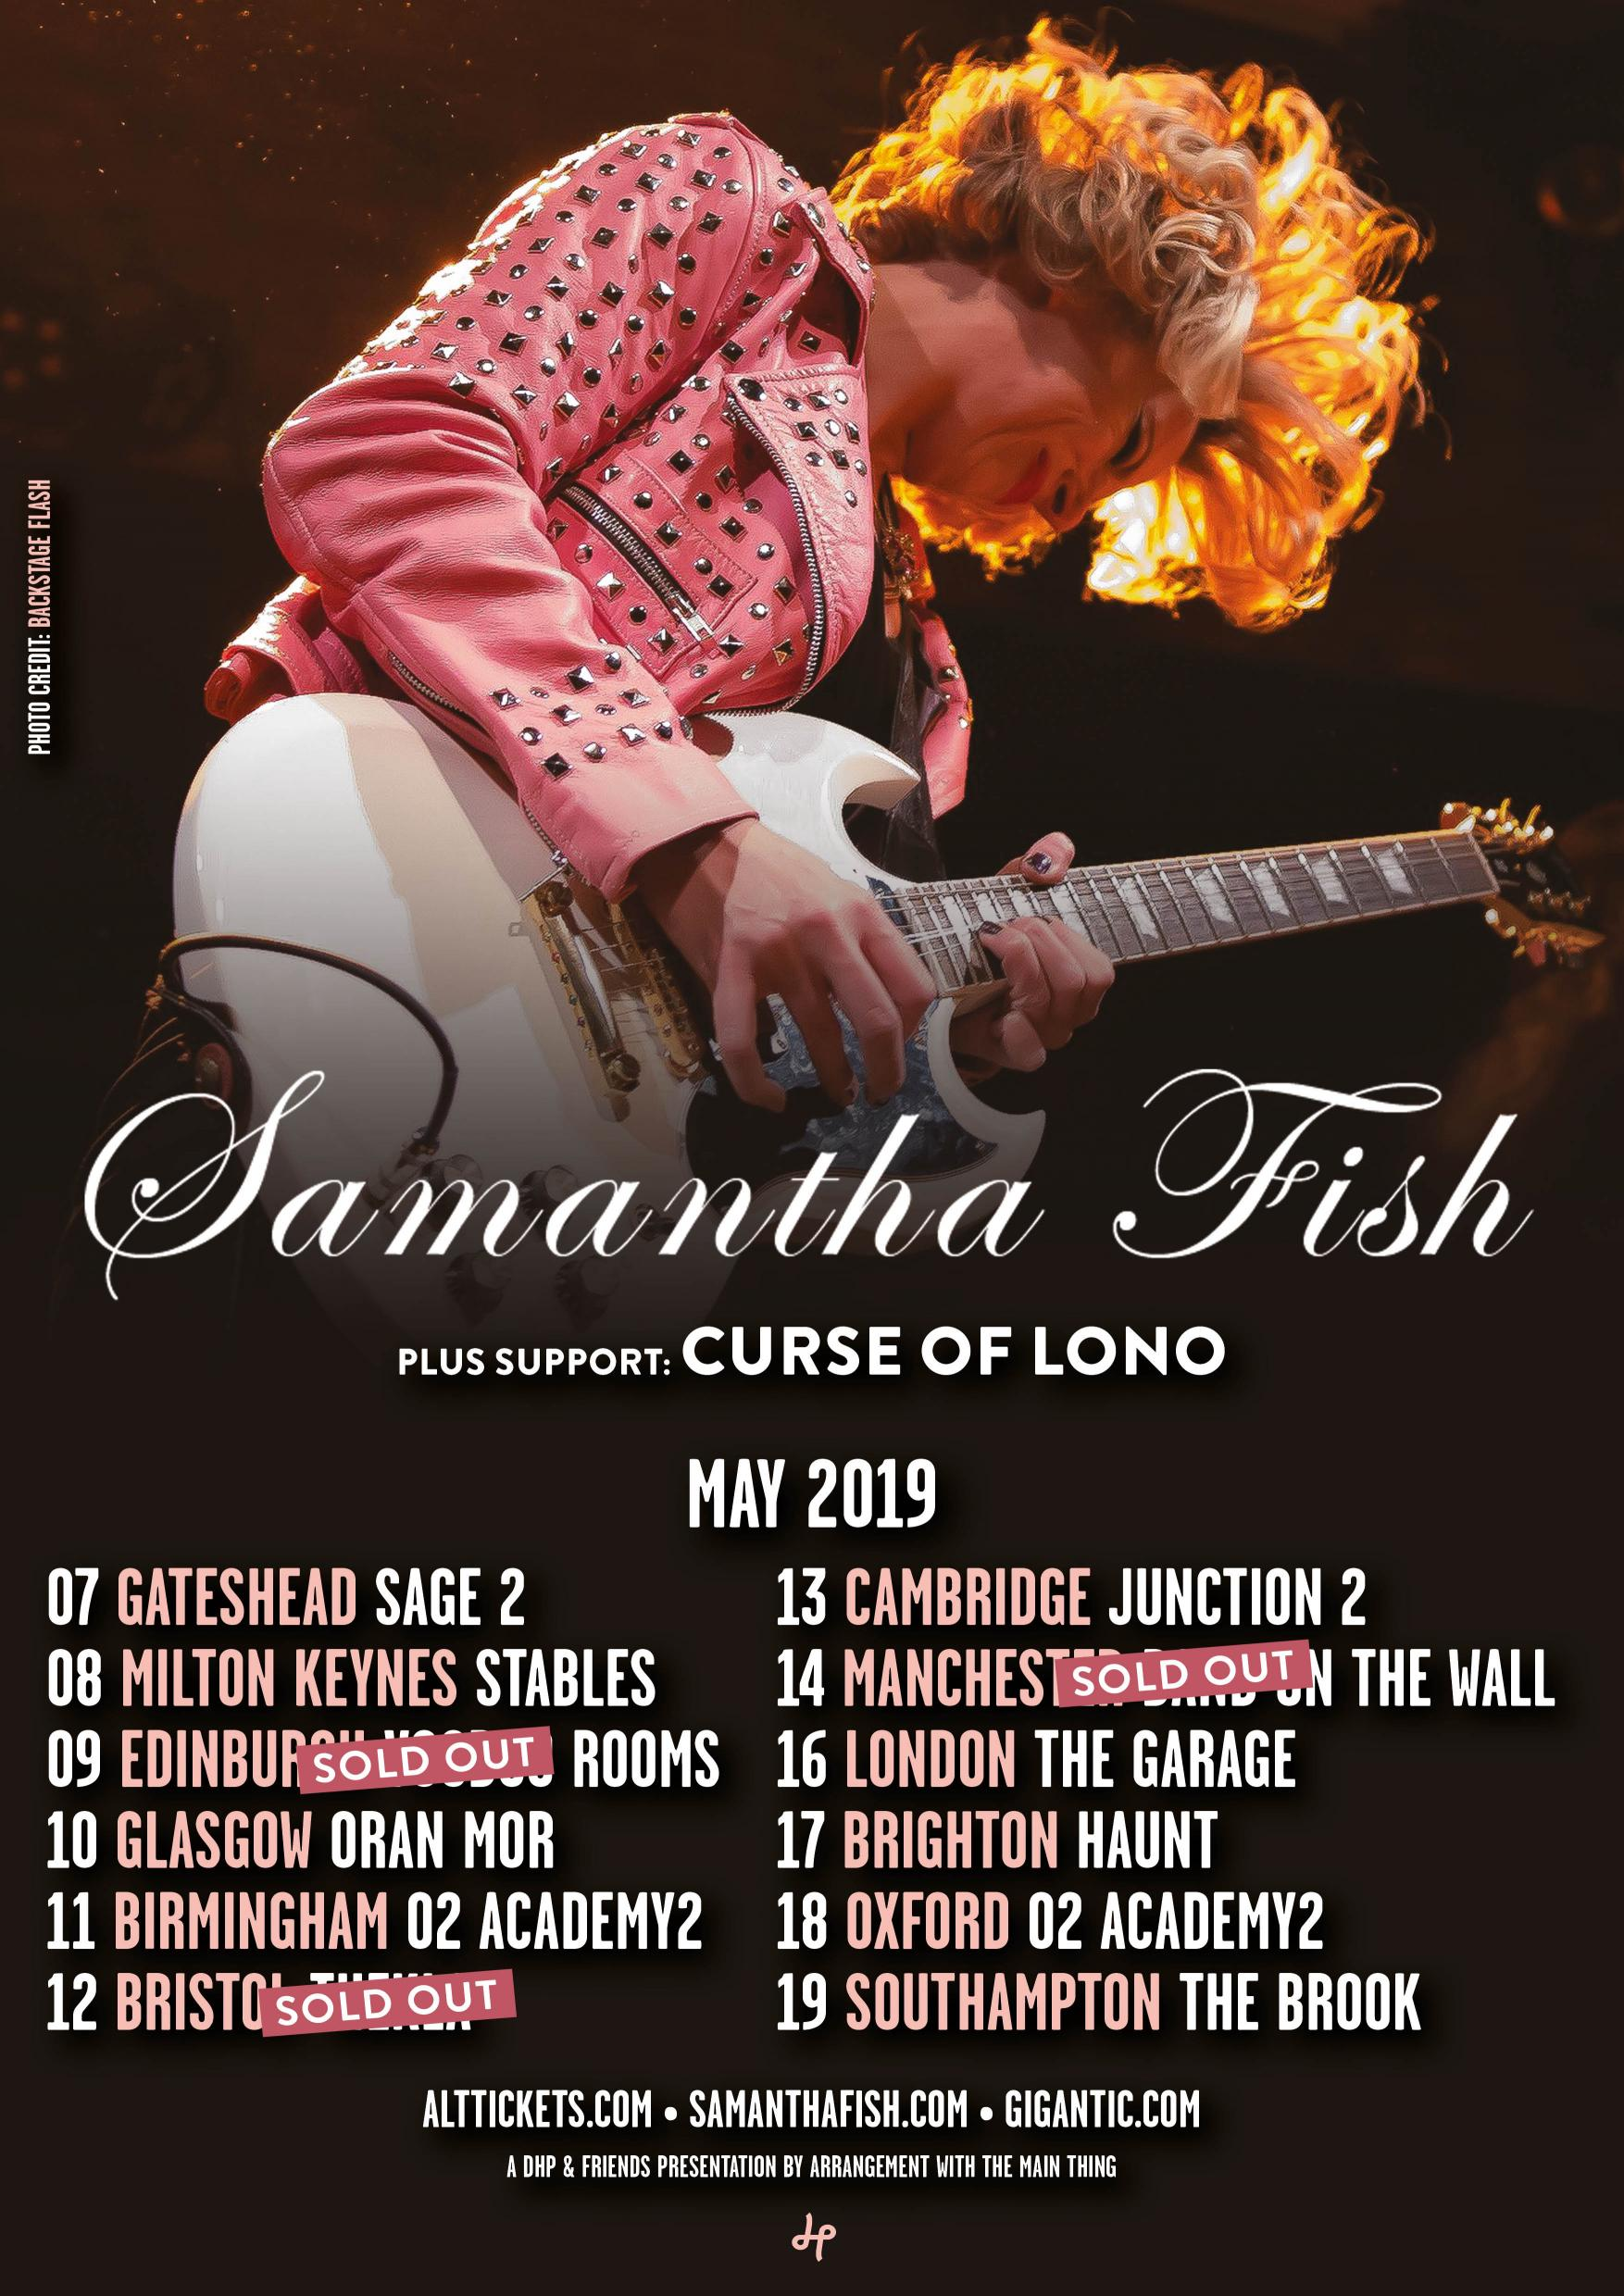 Samantha Fish to play in Glasgow on May 10th as Part of UK tour.